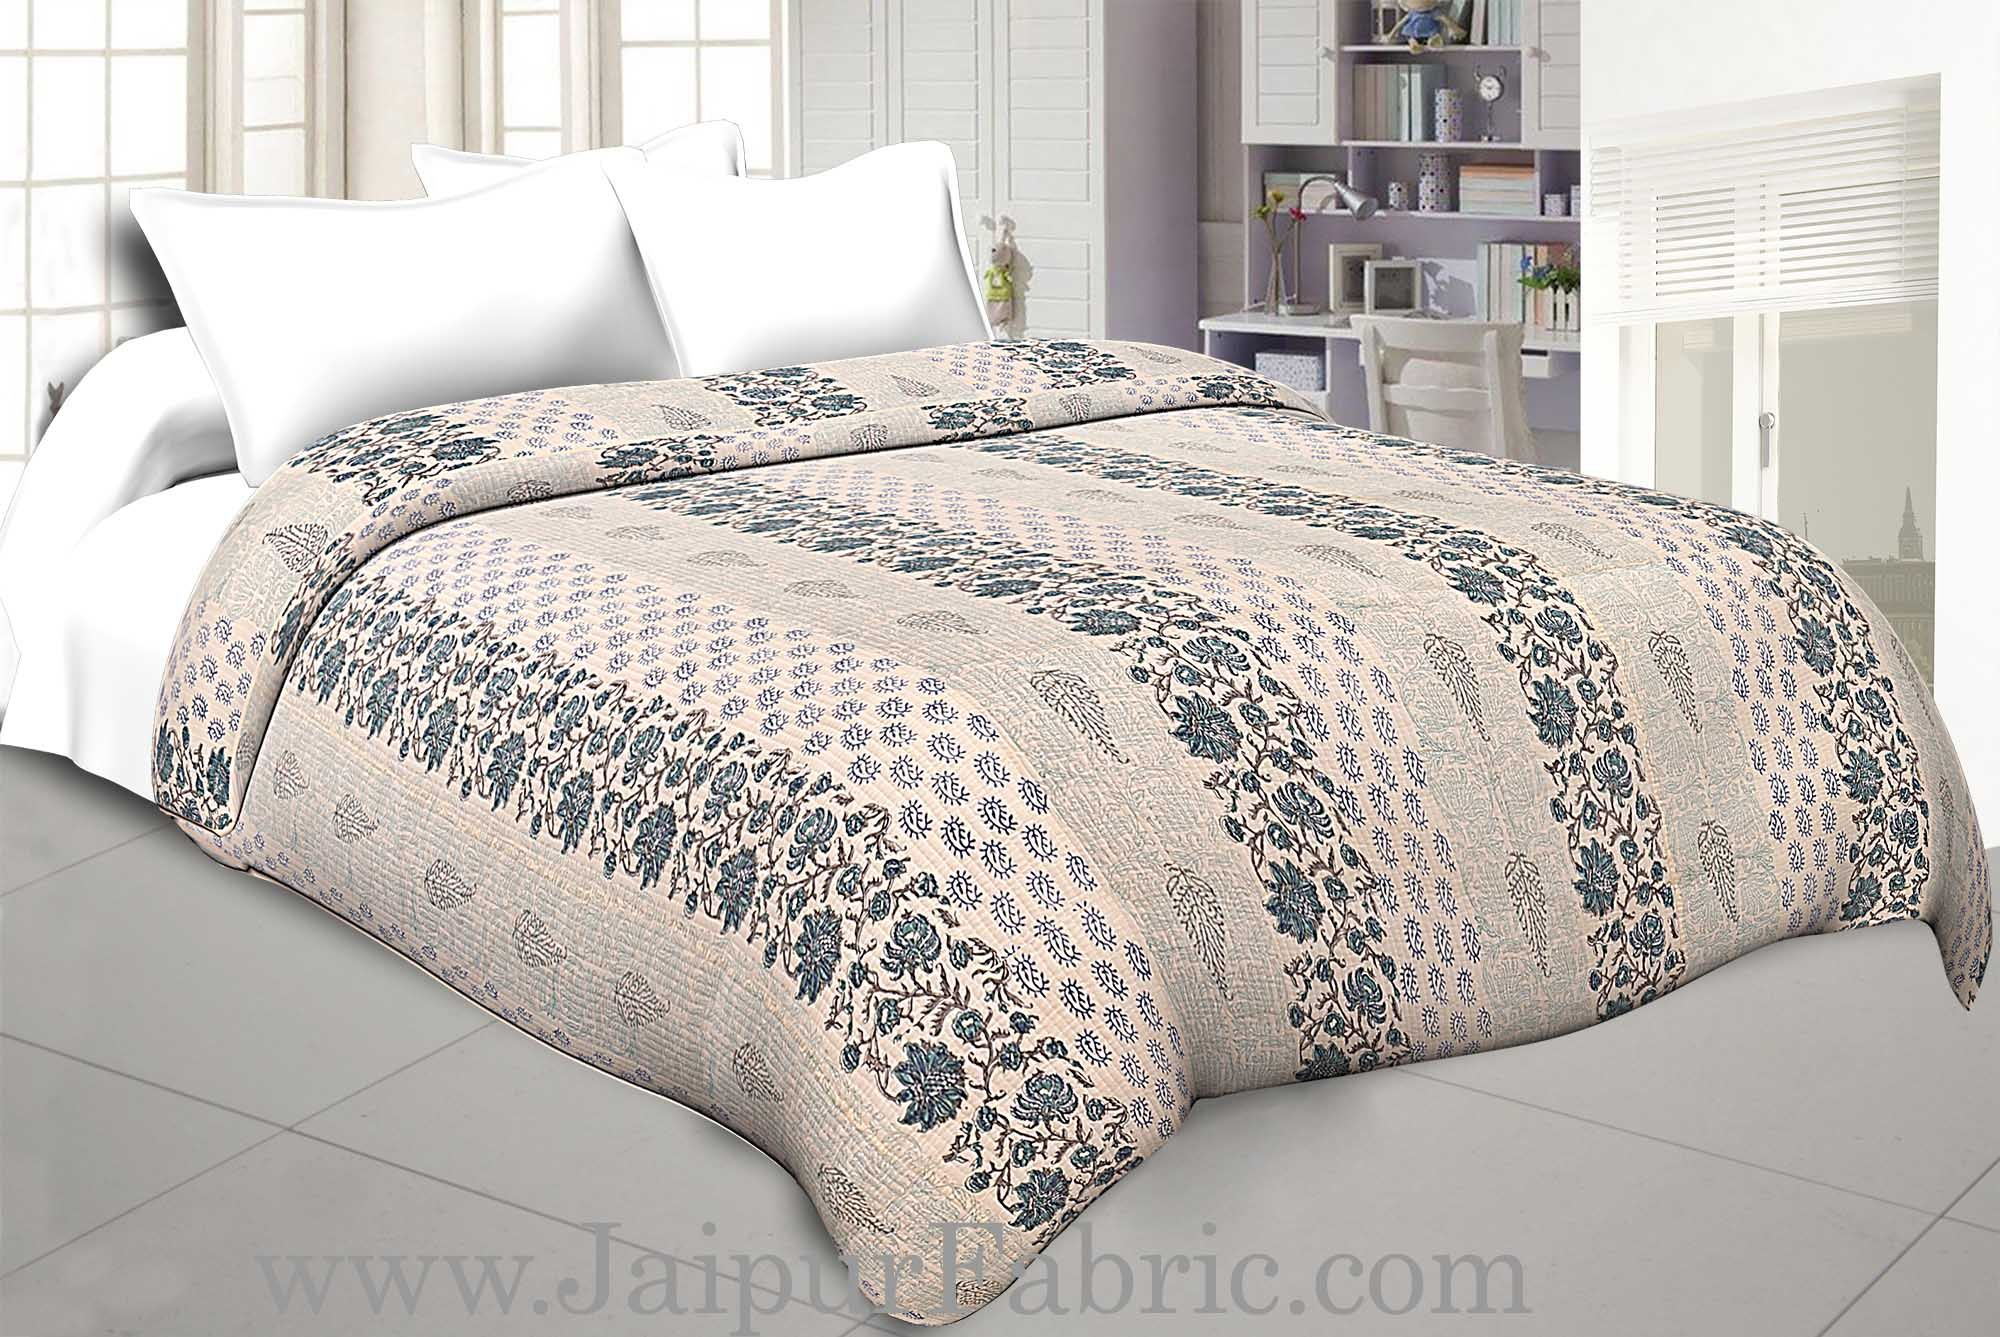 Multi Color Patchwork Single Sided Printed Blue Floral Double Bed Comforter